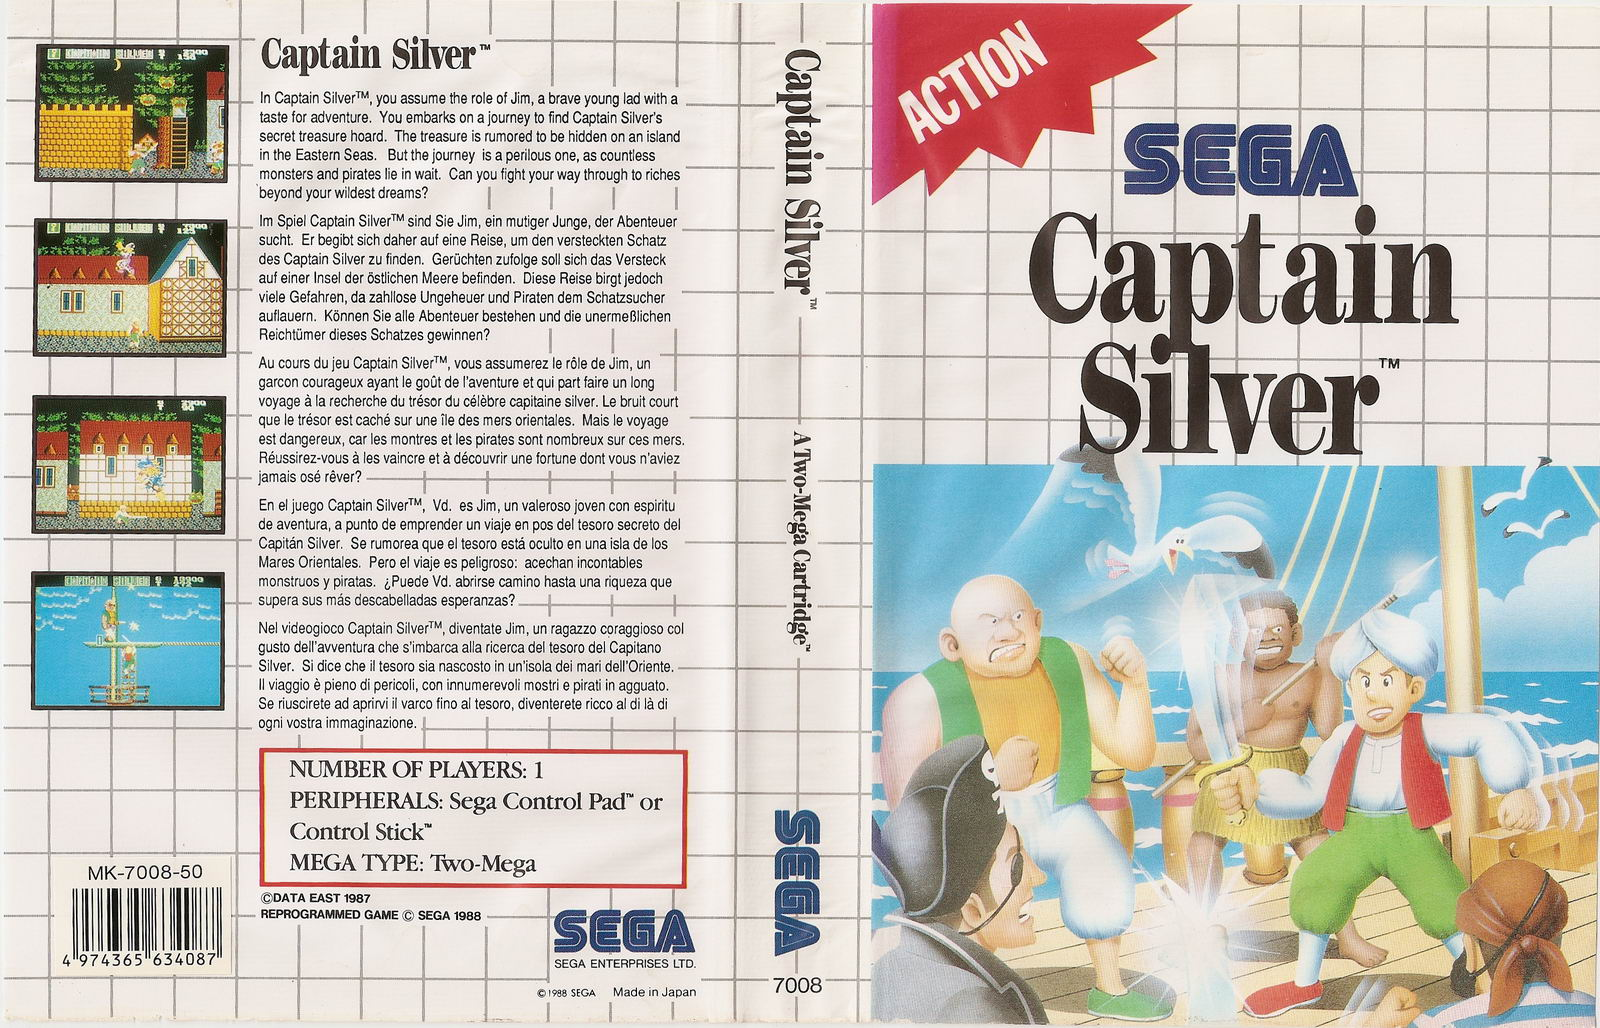 http://www.smspower.org/uploads/Scans/CaptainSilver-SMS-EU-NoR.jpg